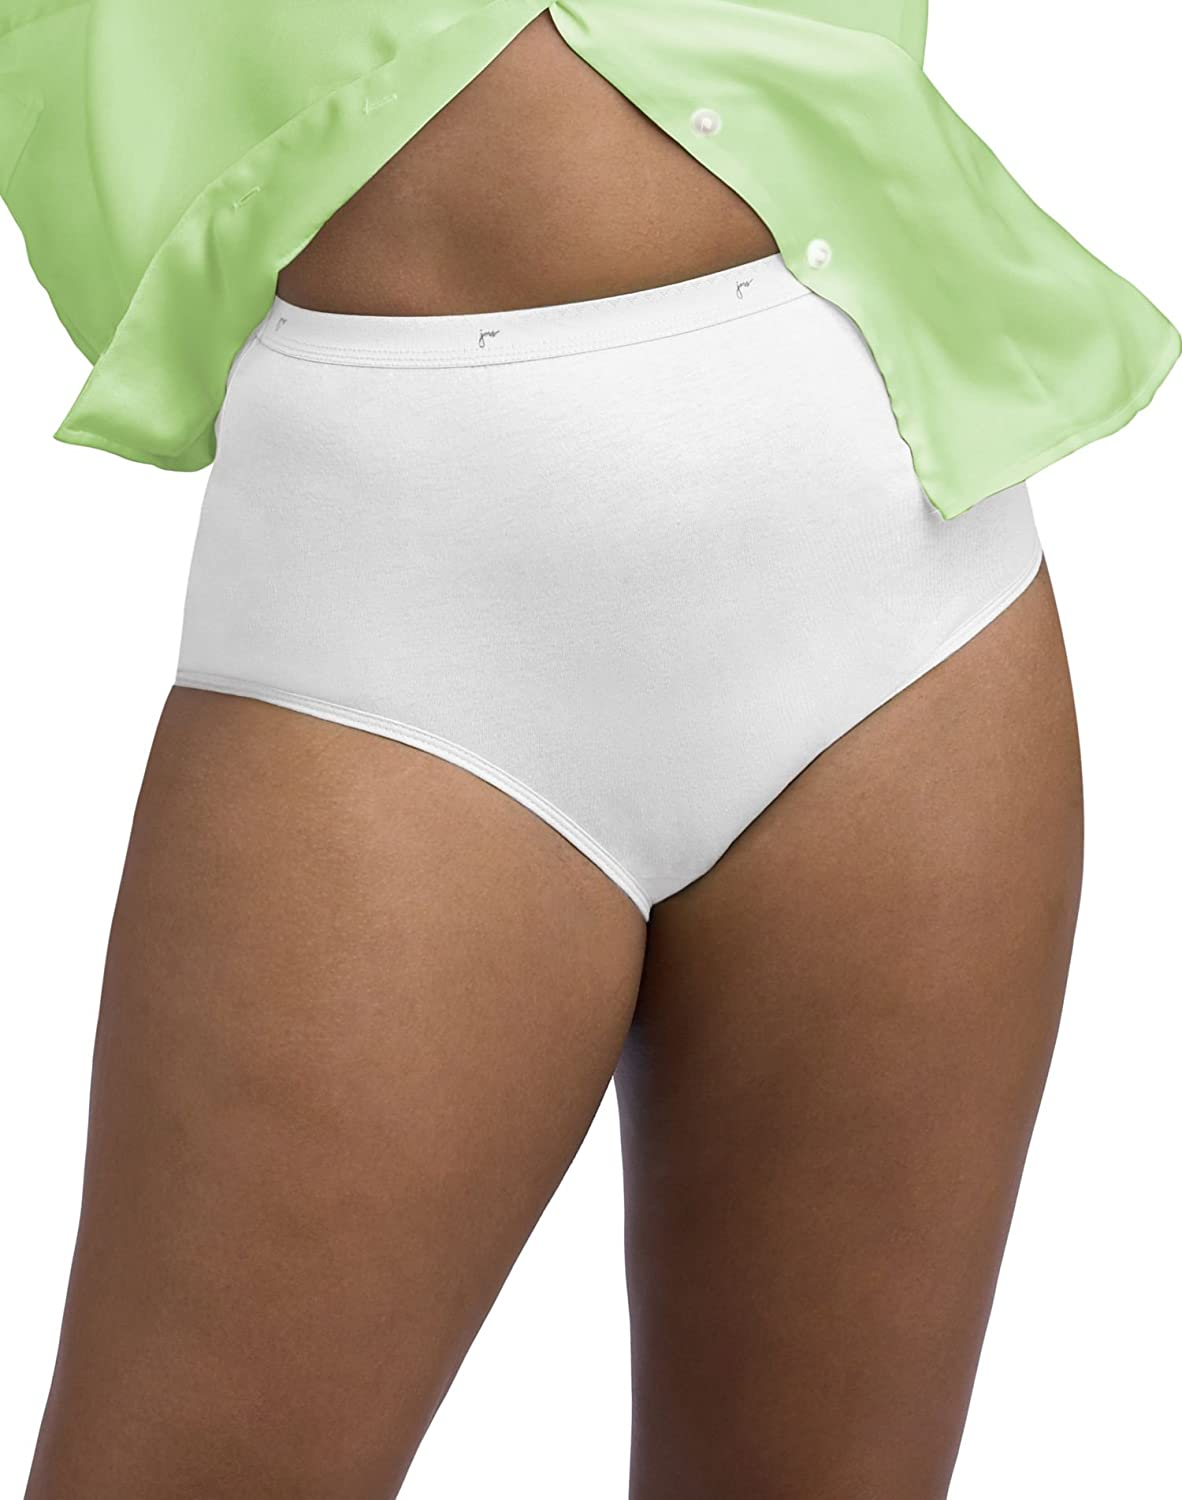 JUST MY SIZE Nylon Briefs 3 Over item handling ☆ - Colors Jacksonville Mall 0601wp Pack Assorted